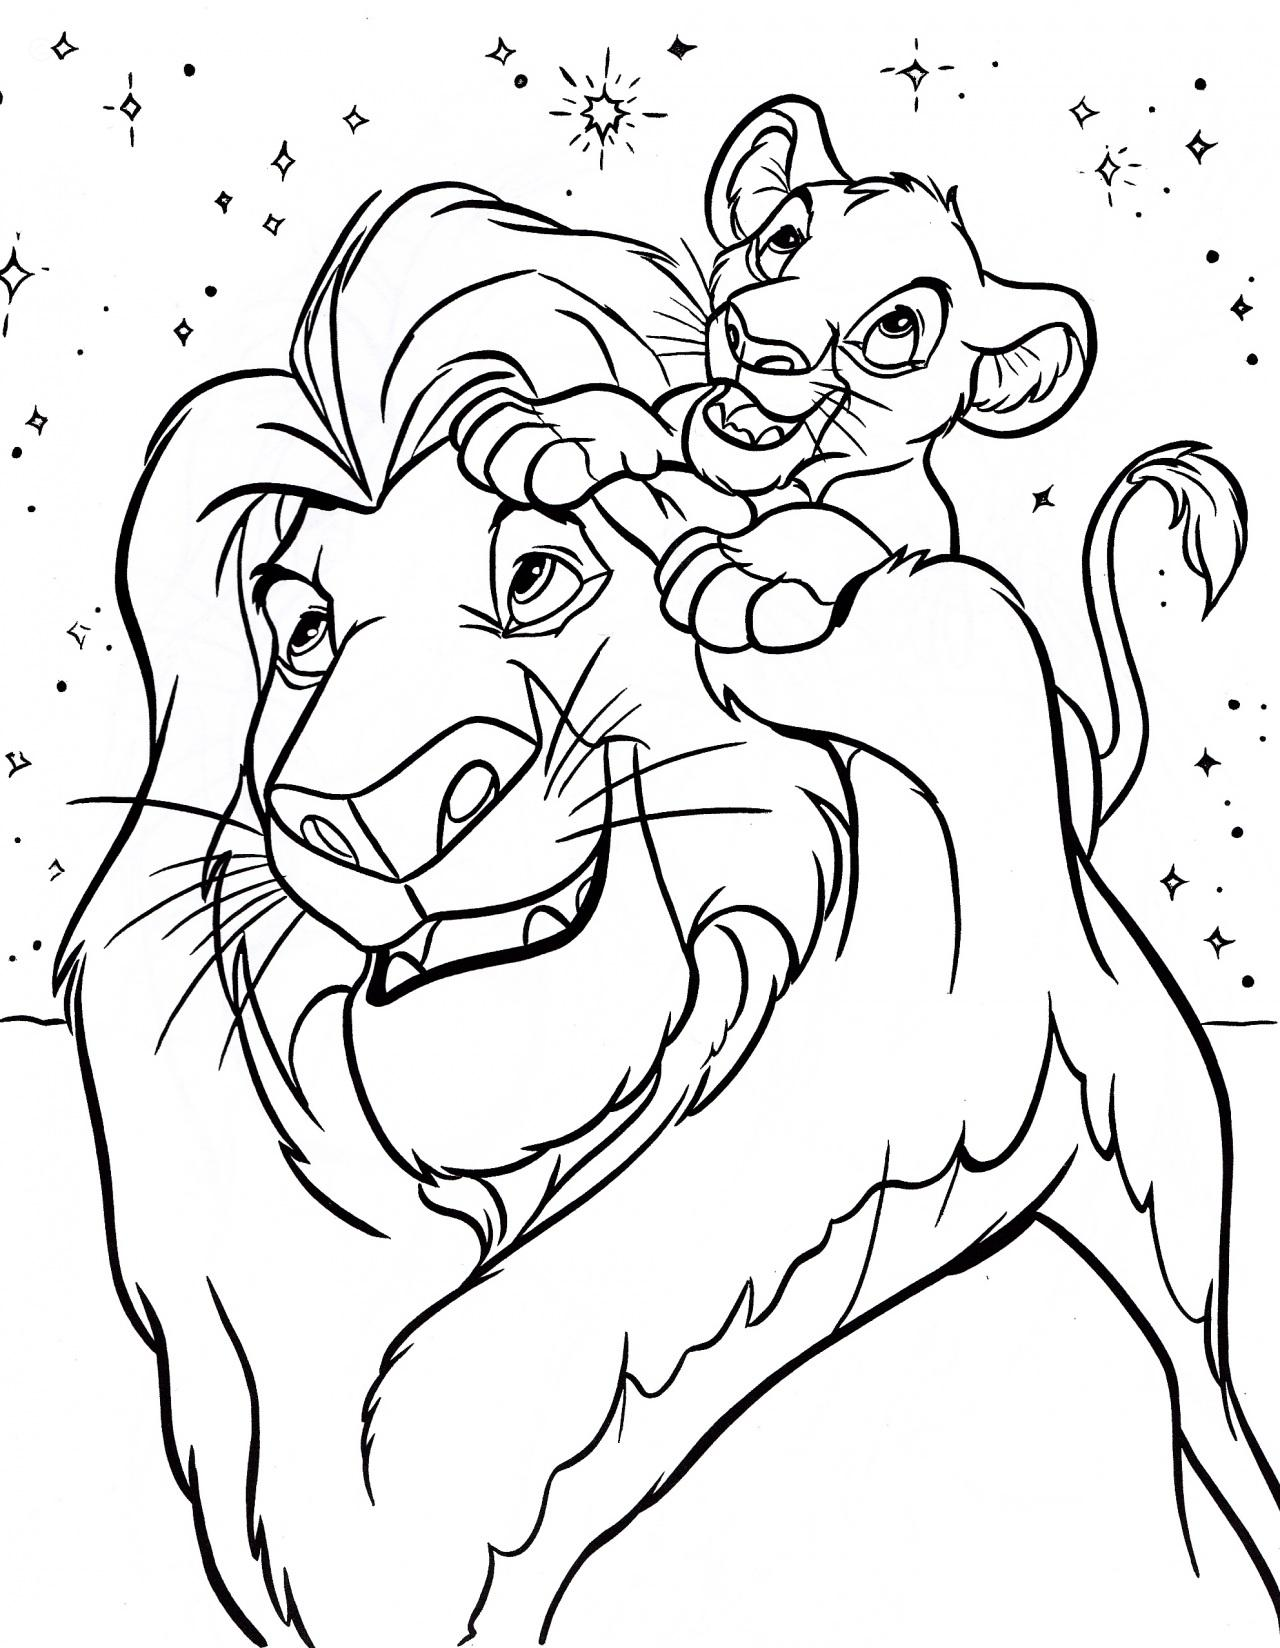 Free printable lion king coloring pages